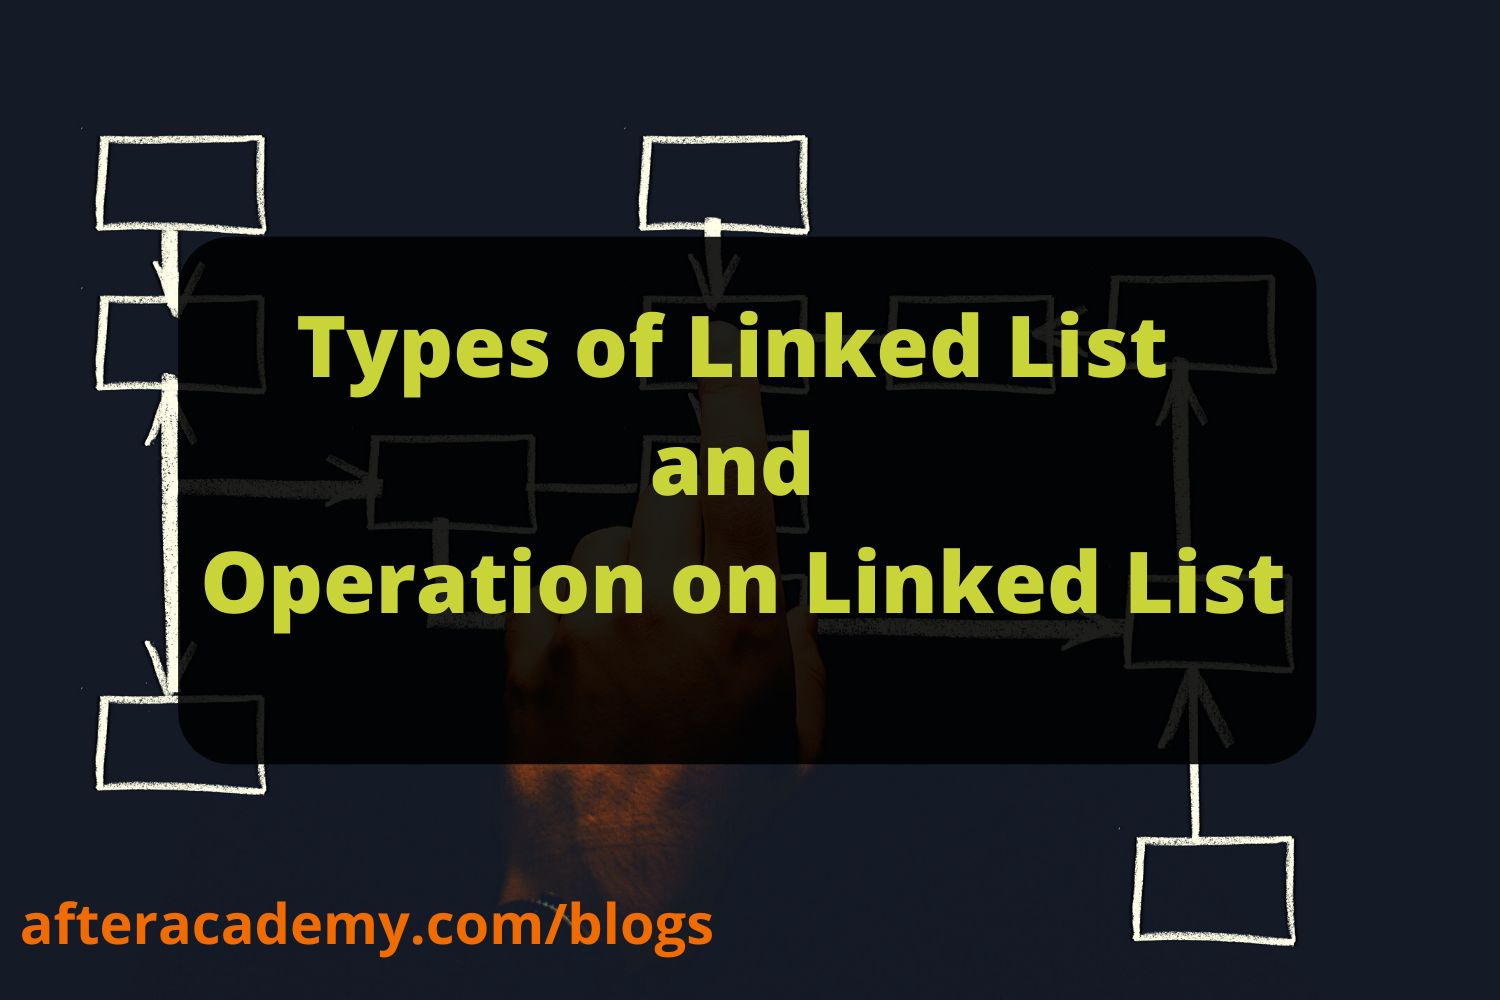 Types of Linked List and Operation on Linked List